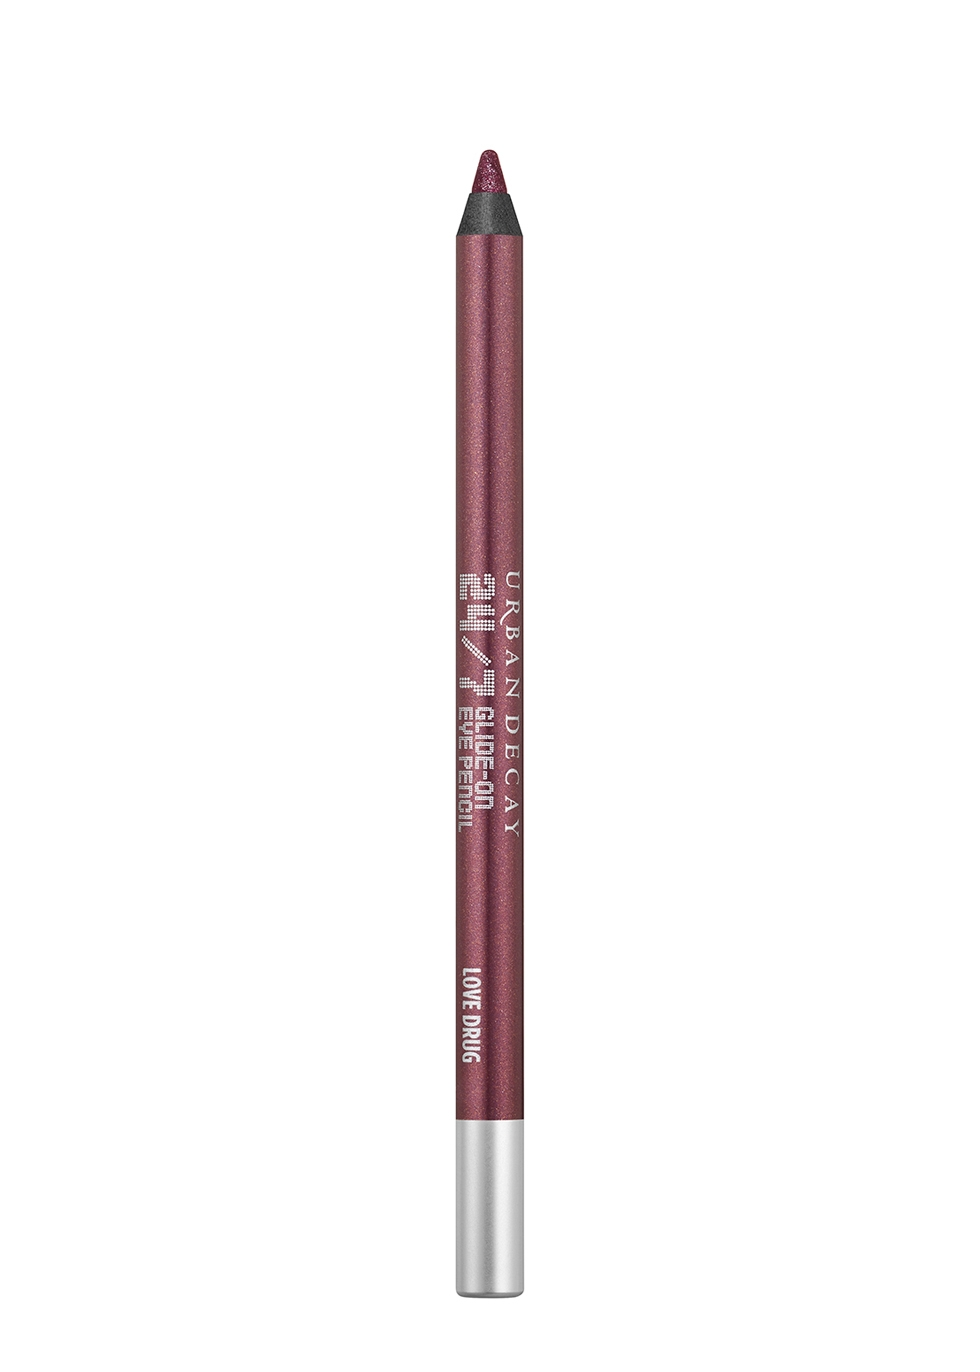 Urban Decay 24/7 Eye Pencil Cherry - Urban Decay